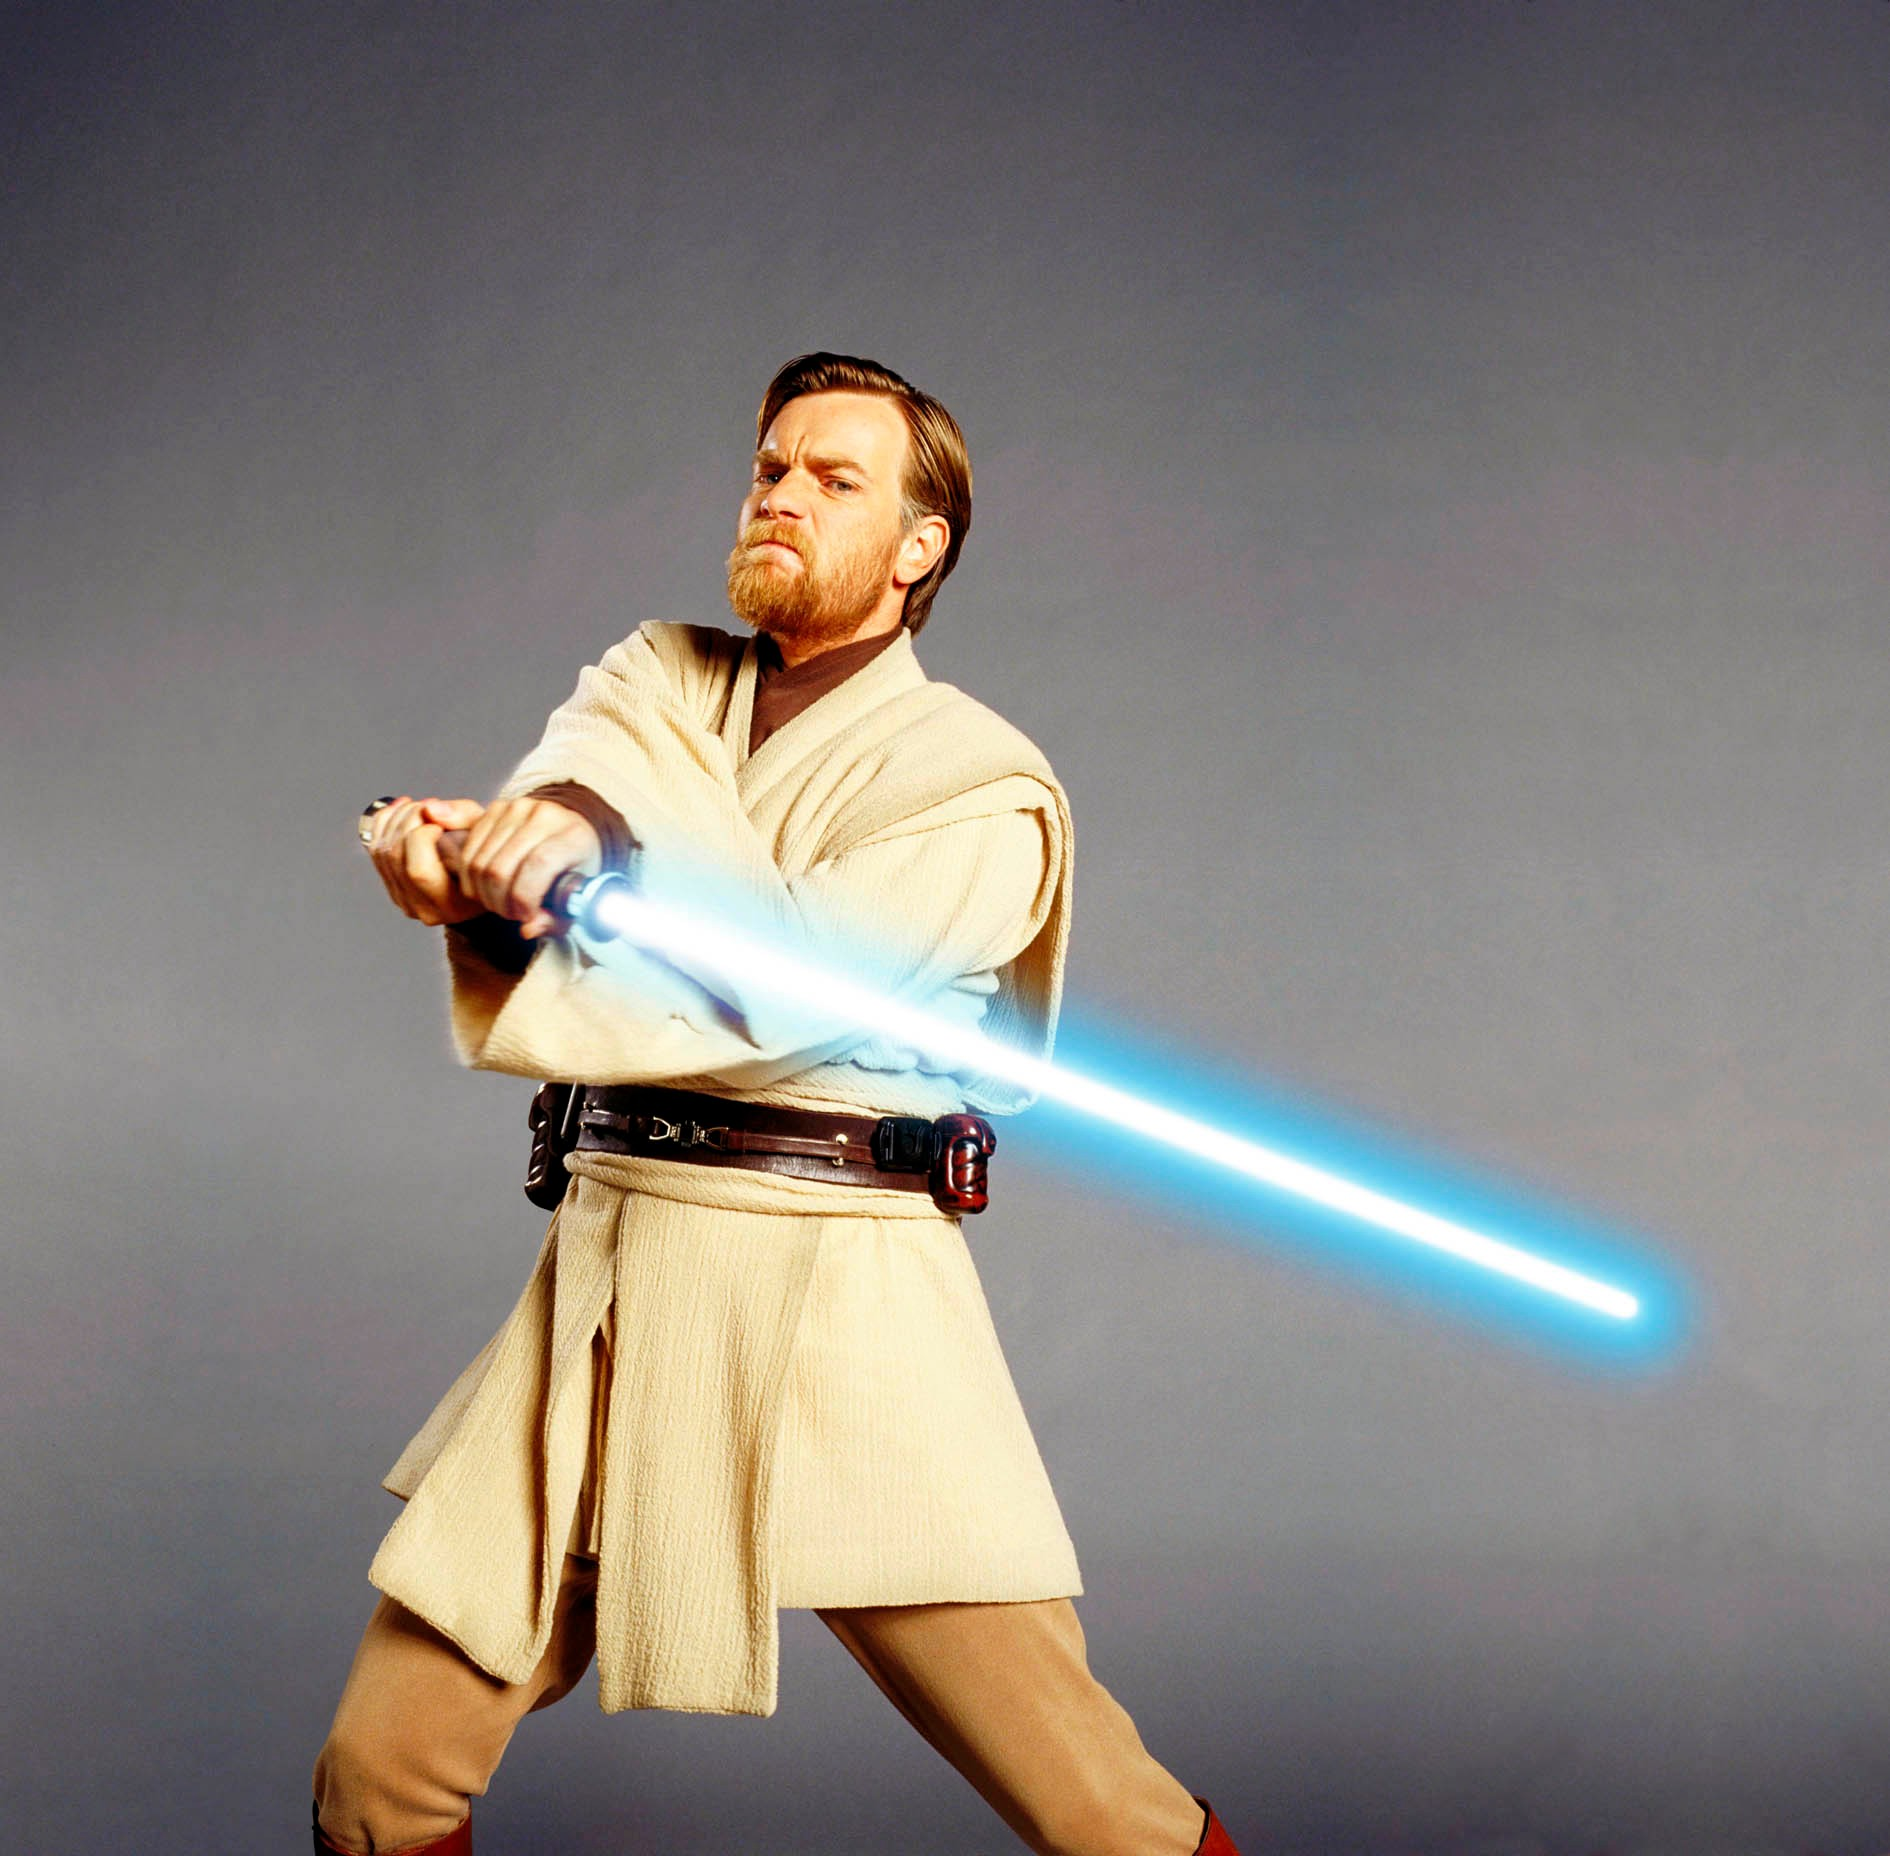 Star Wars Episode III - Revenge Of The Sith starring Ewan McGregor as Obi-Wan Kenobi